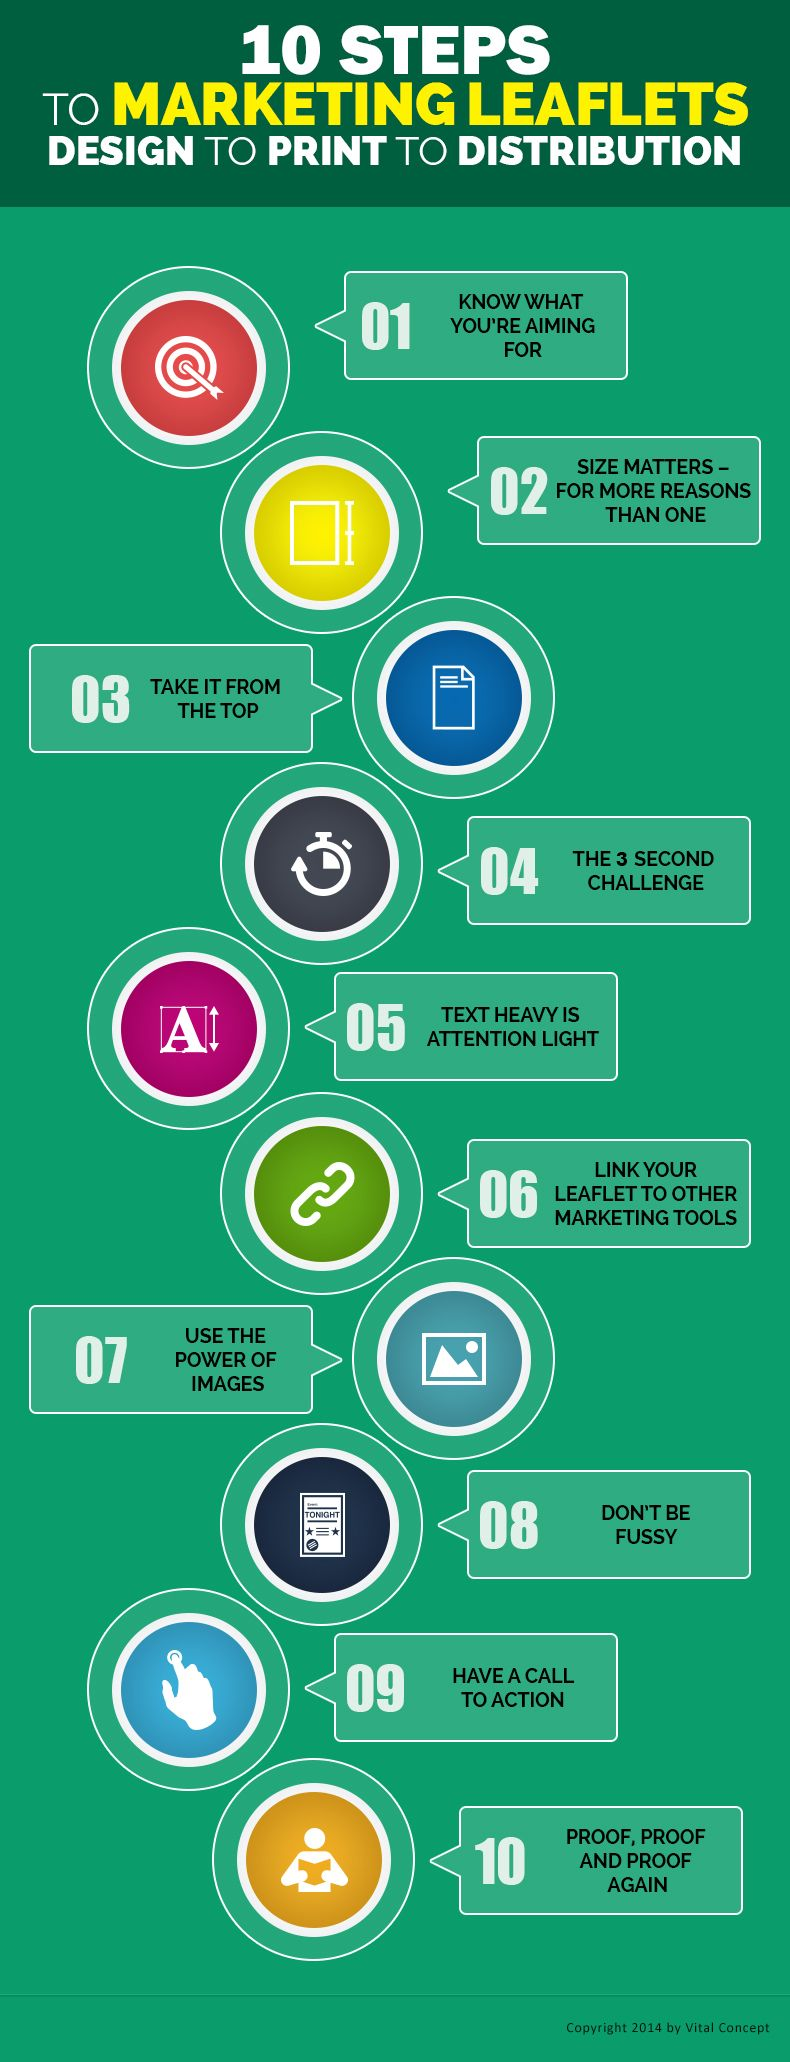 10 Steps to Marketing Leaflets Design to Print to